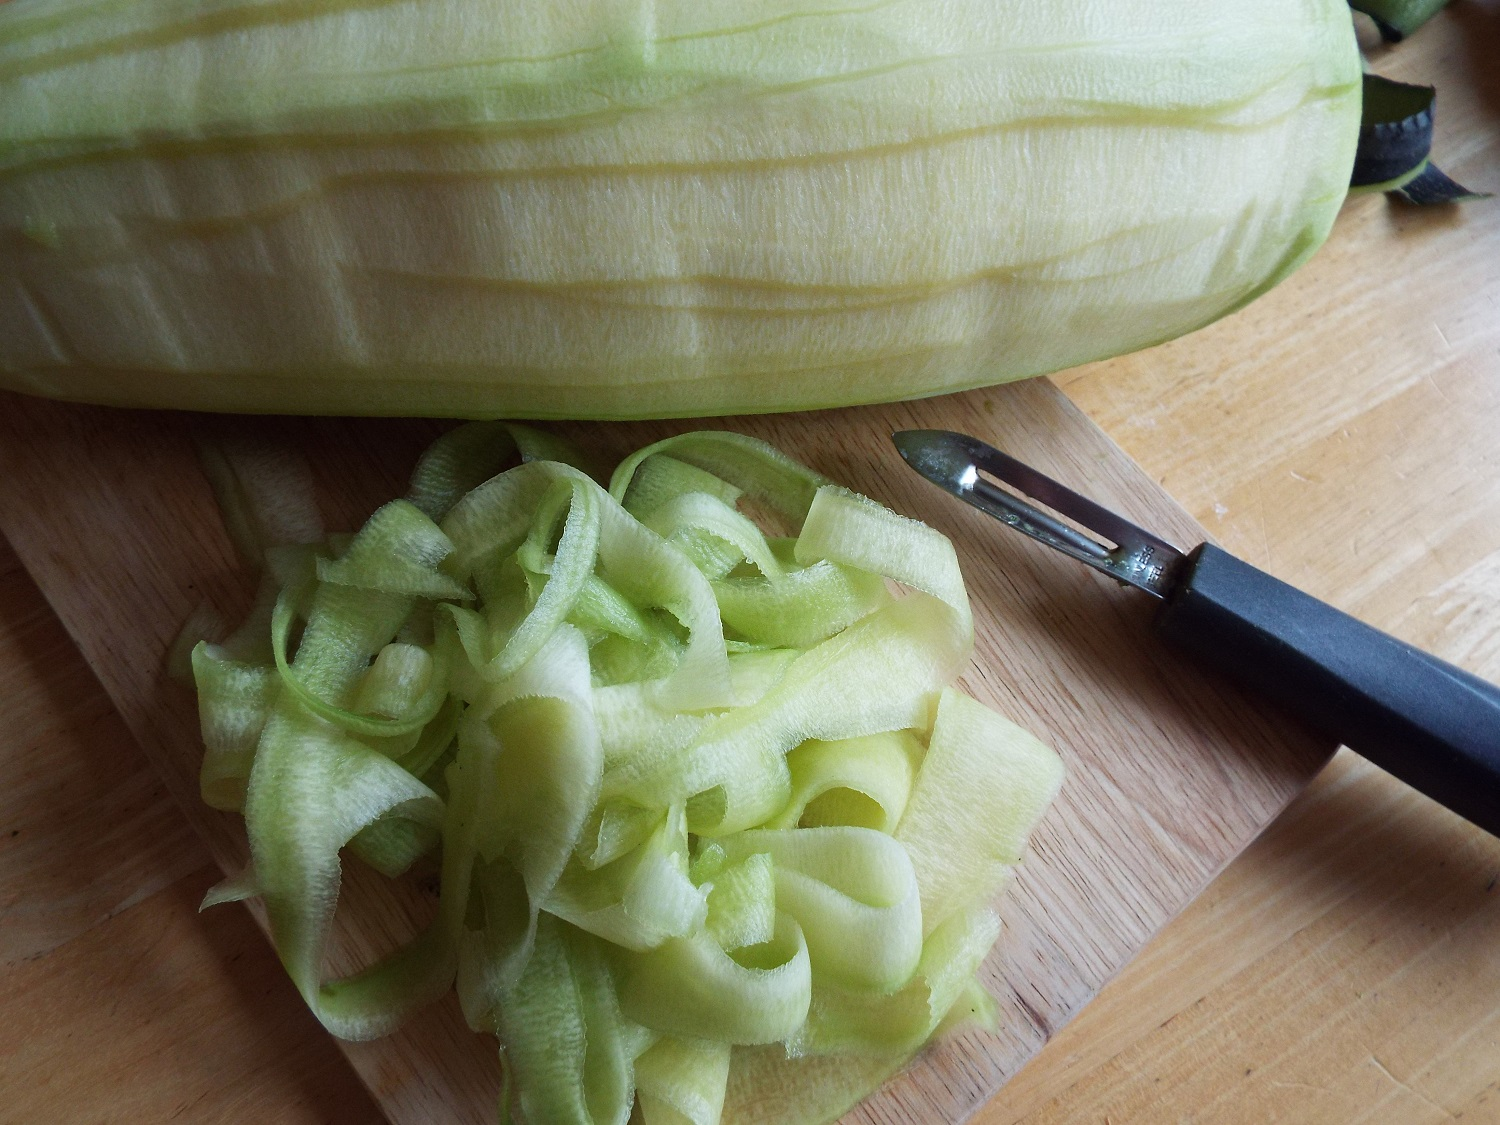 Making 'courgetti' from zucchini or marrows - only a basic peeler needed